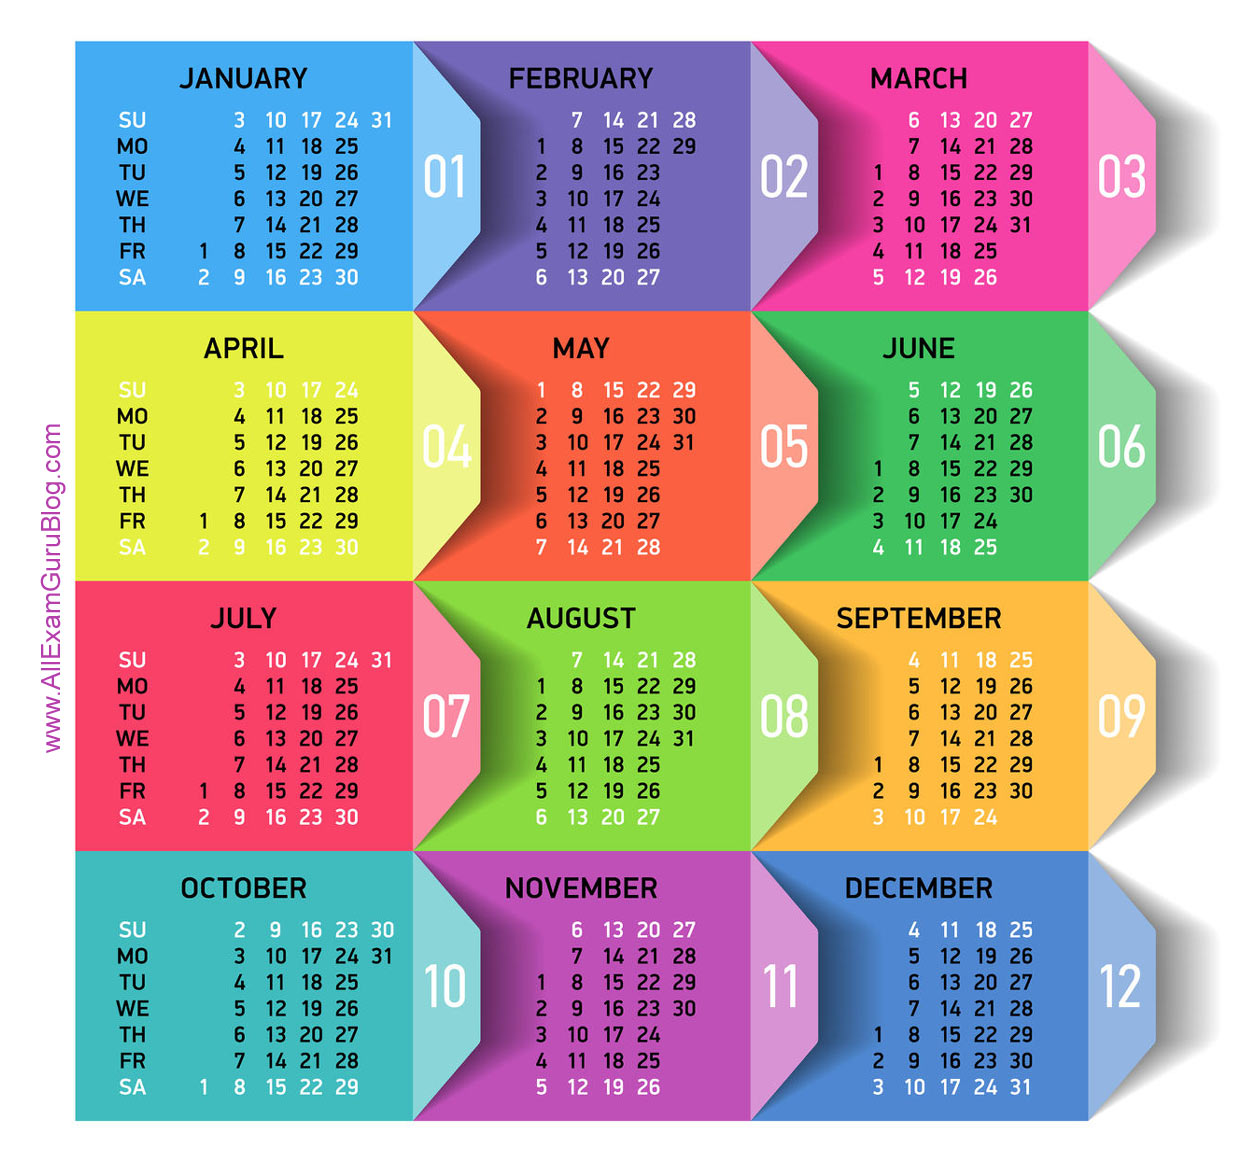 Year Calendar Wallpaper : Free desktop calendar wallpaper wallpapersafari